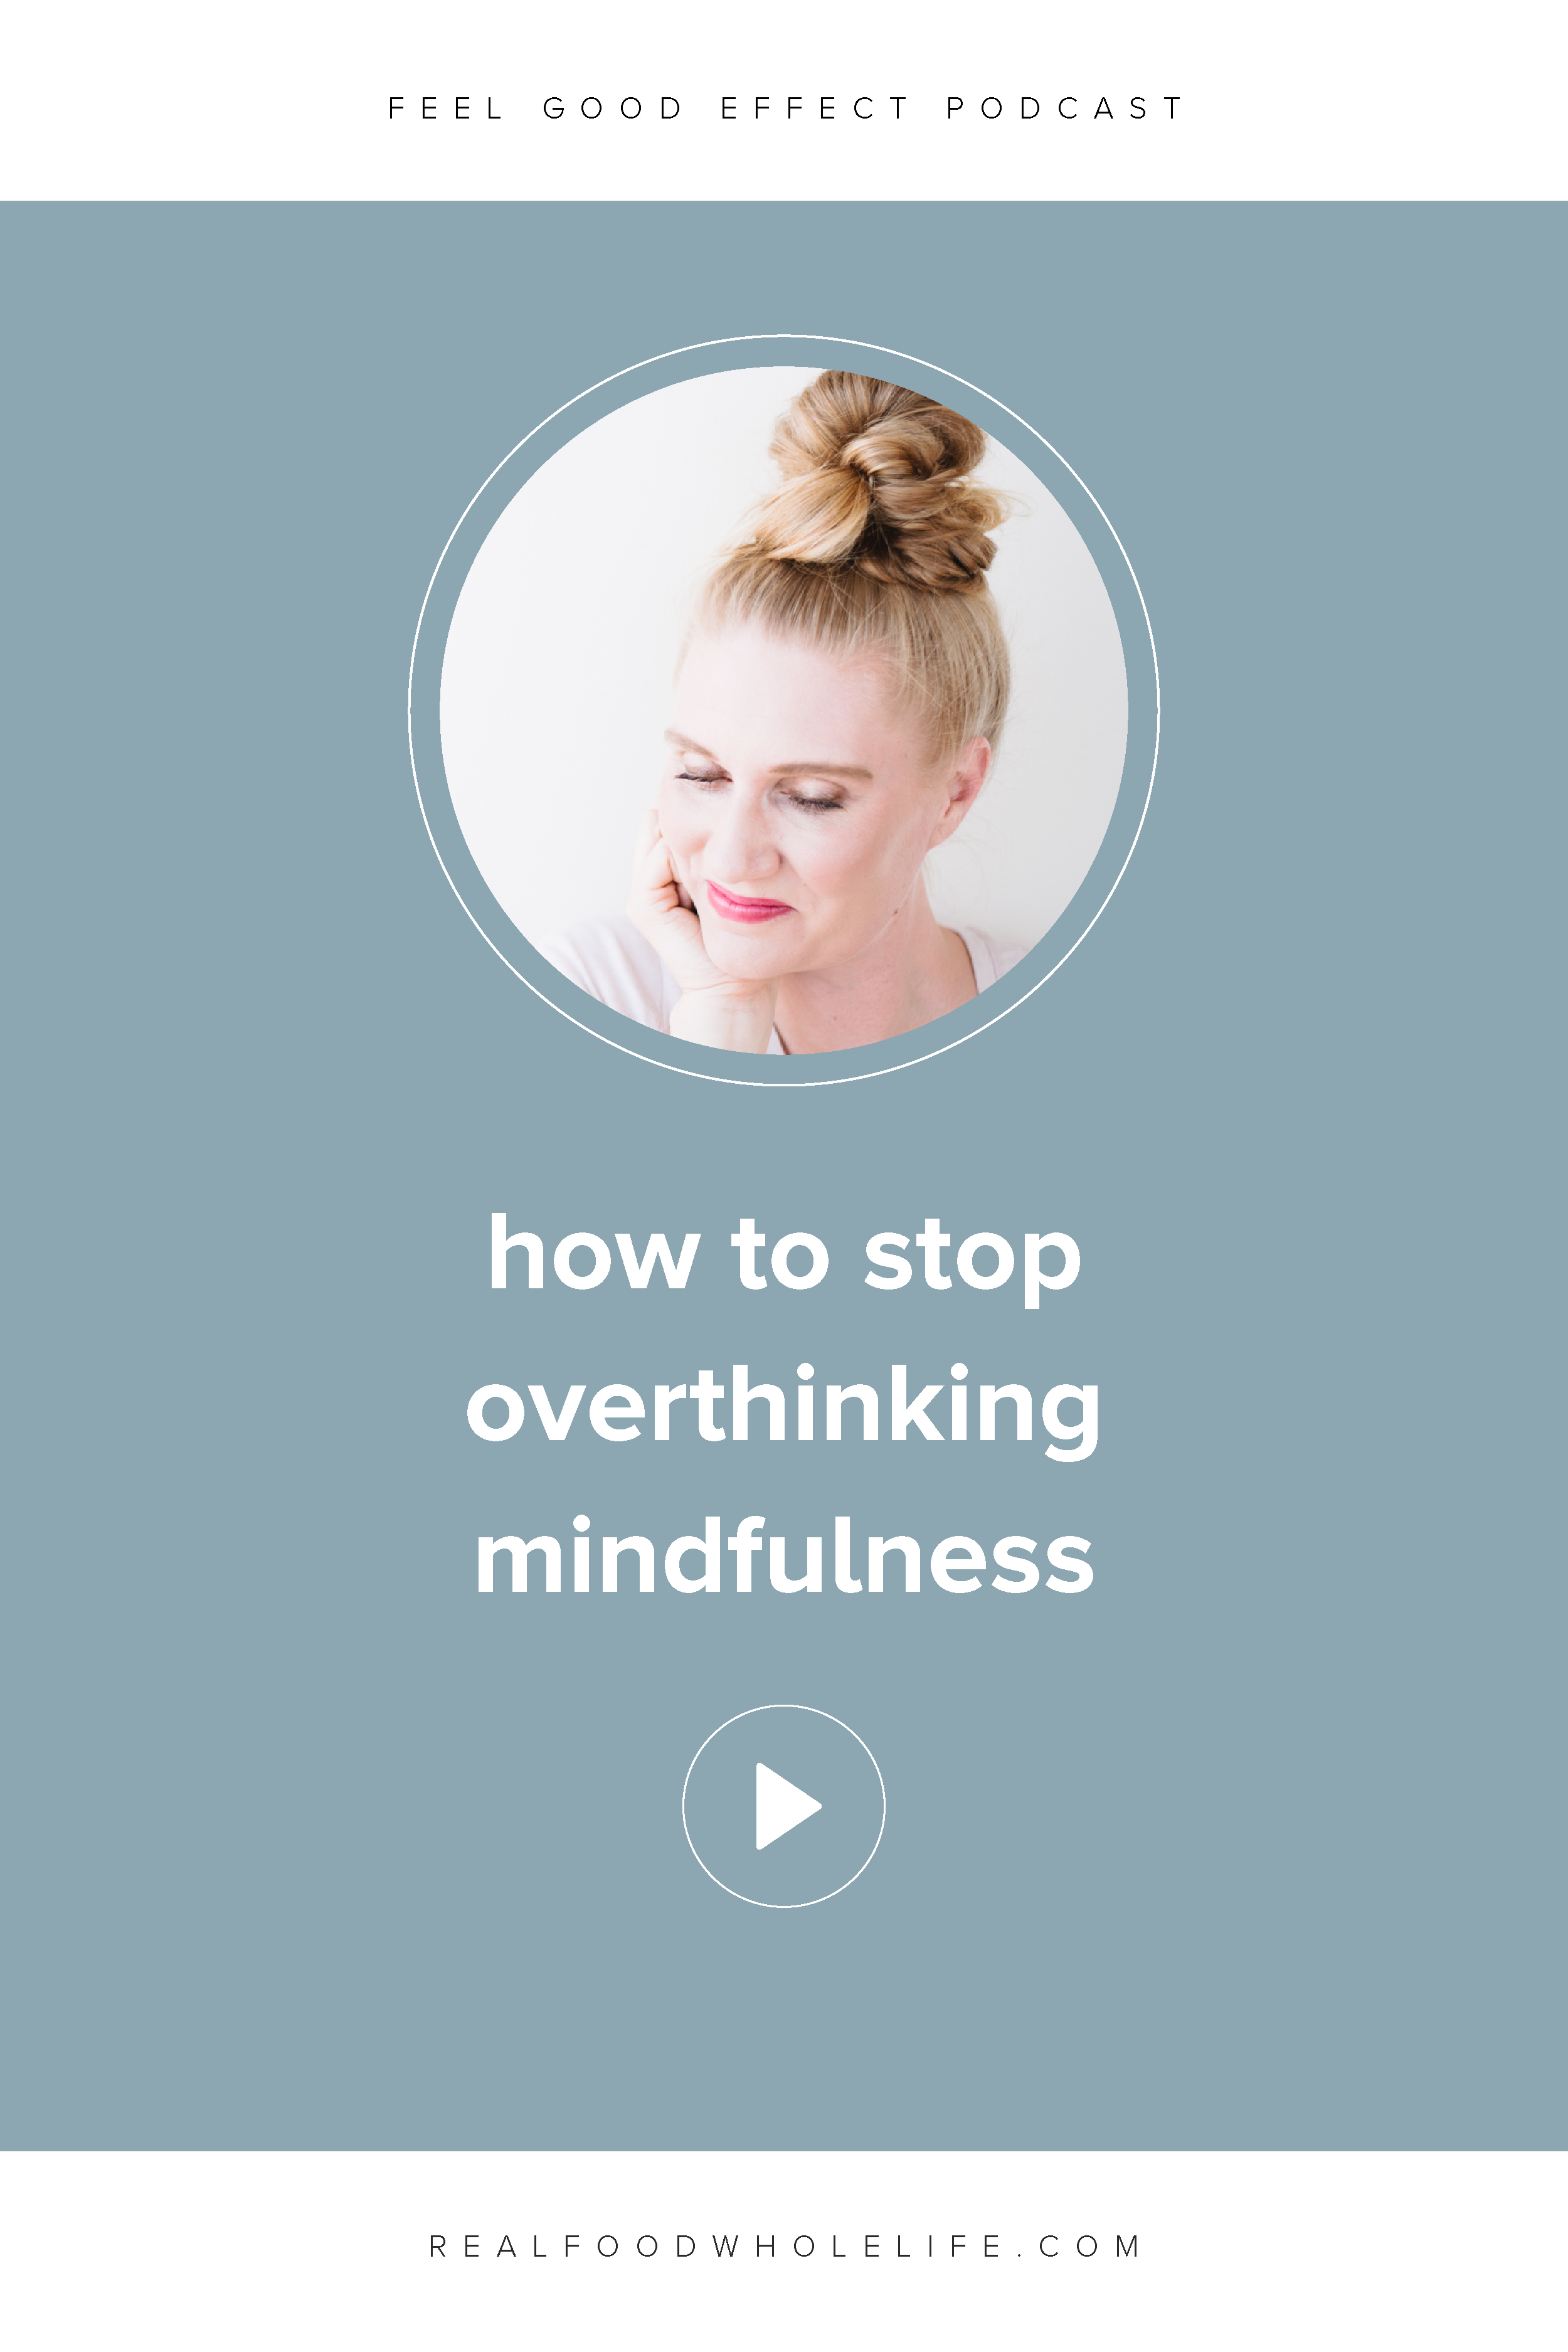 Mindfulness has something for everyone, even though it might seem unattainable or intimidating. This episode of the Feel Good Effect is about how to stop overthinking mindfulness and how to infuse more presence into your everyday life. #realfoodwholelife #feelgoodeffect #welllnesspodcast #simplifywellness #stopoverthinking #mindfulness